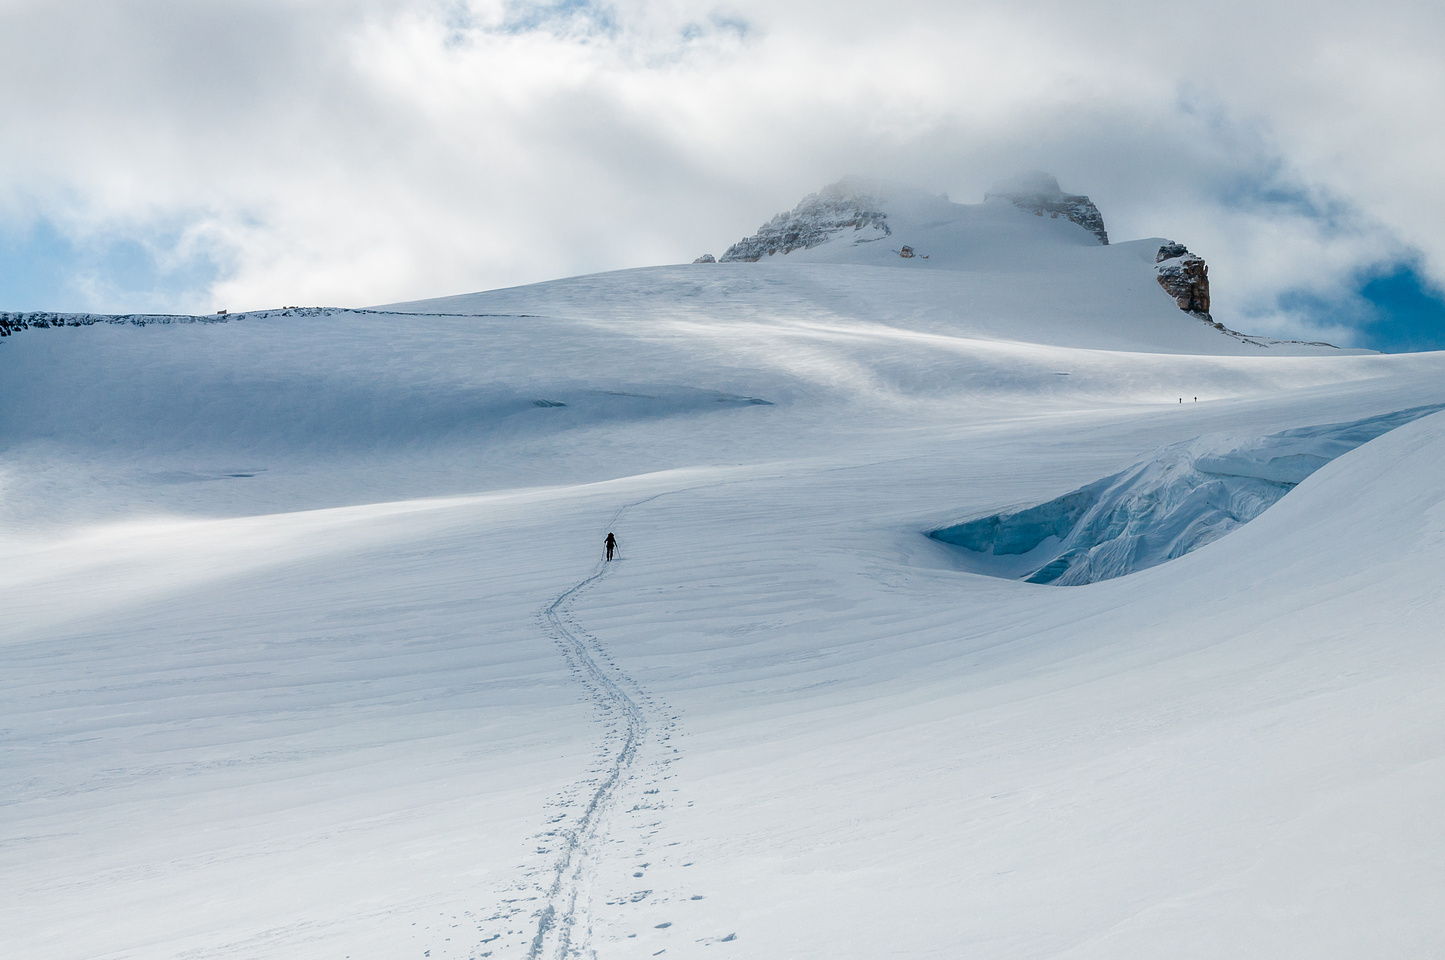 Skiing past a large crevasse on the Hector Glacier with the summit above and the two French guys clearly visible now.